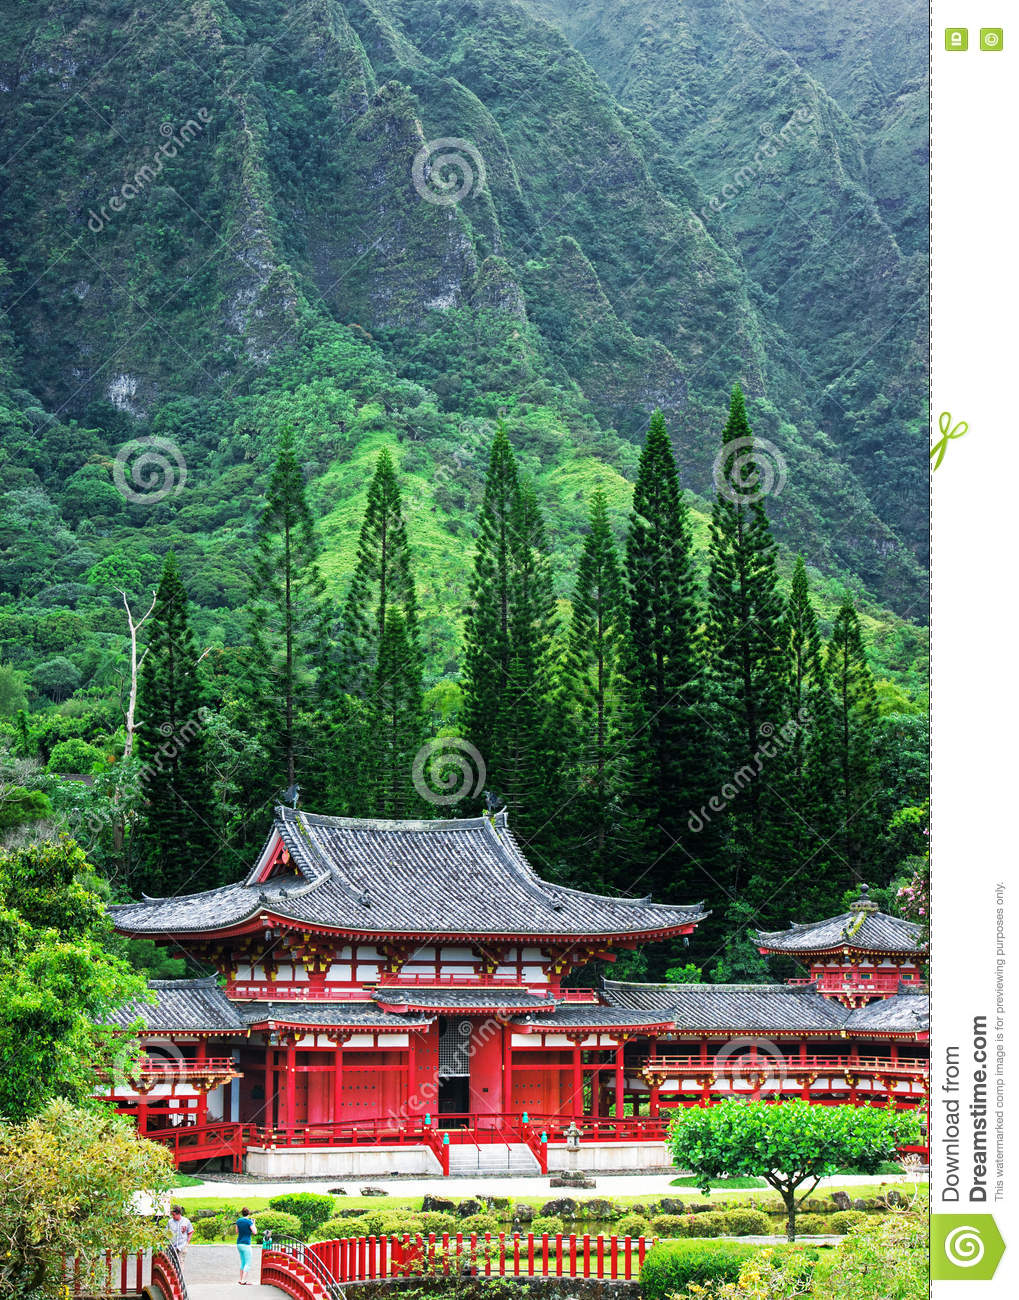 Valley Of The Temples Memorial Park, Maui, Hawaii Stock Photo